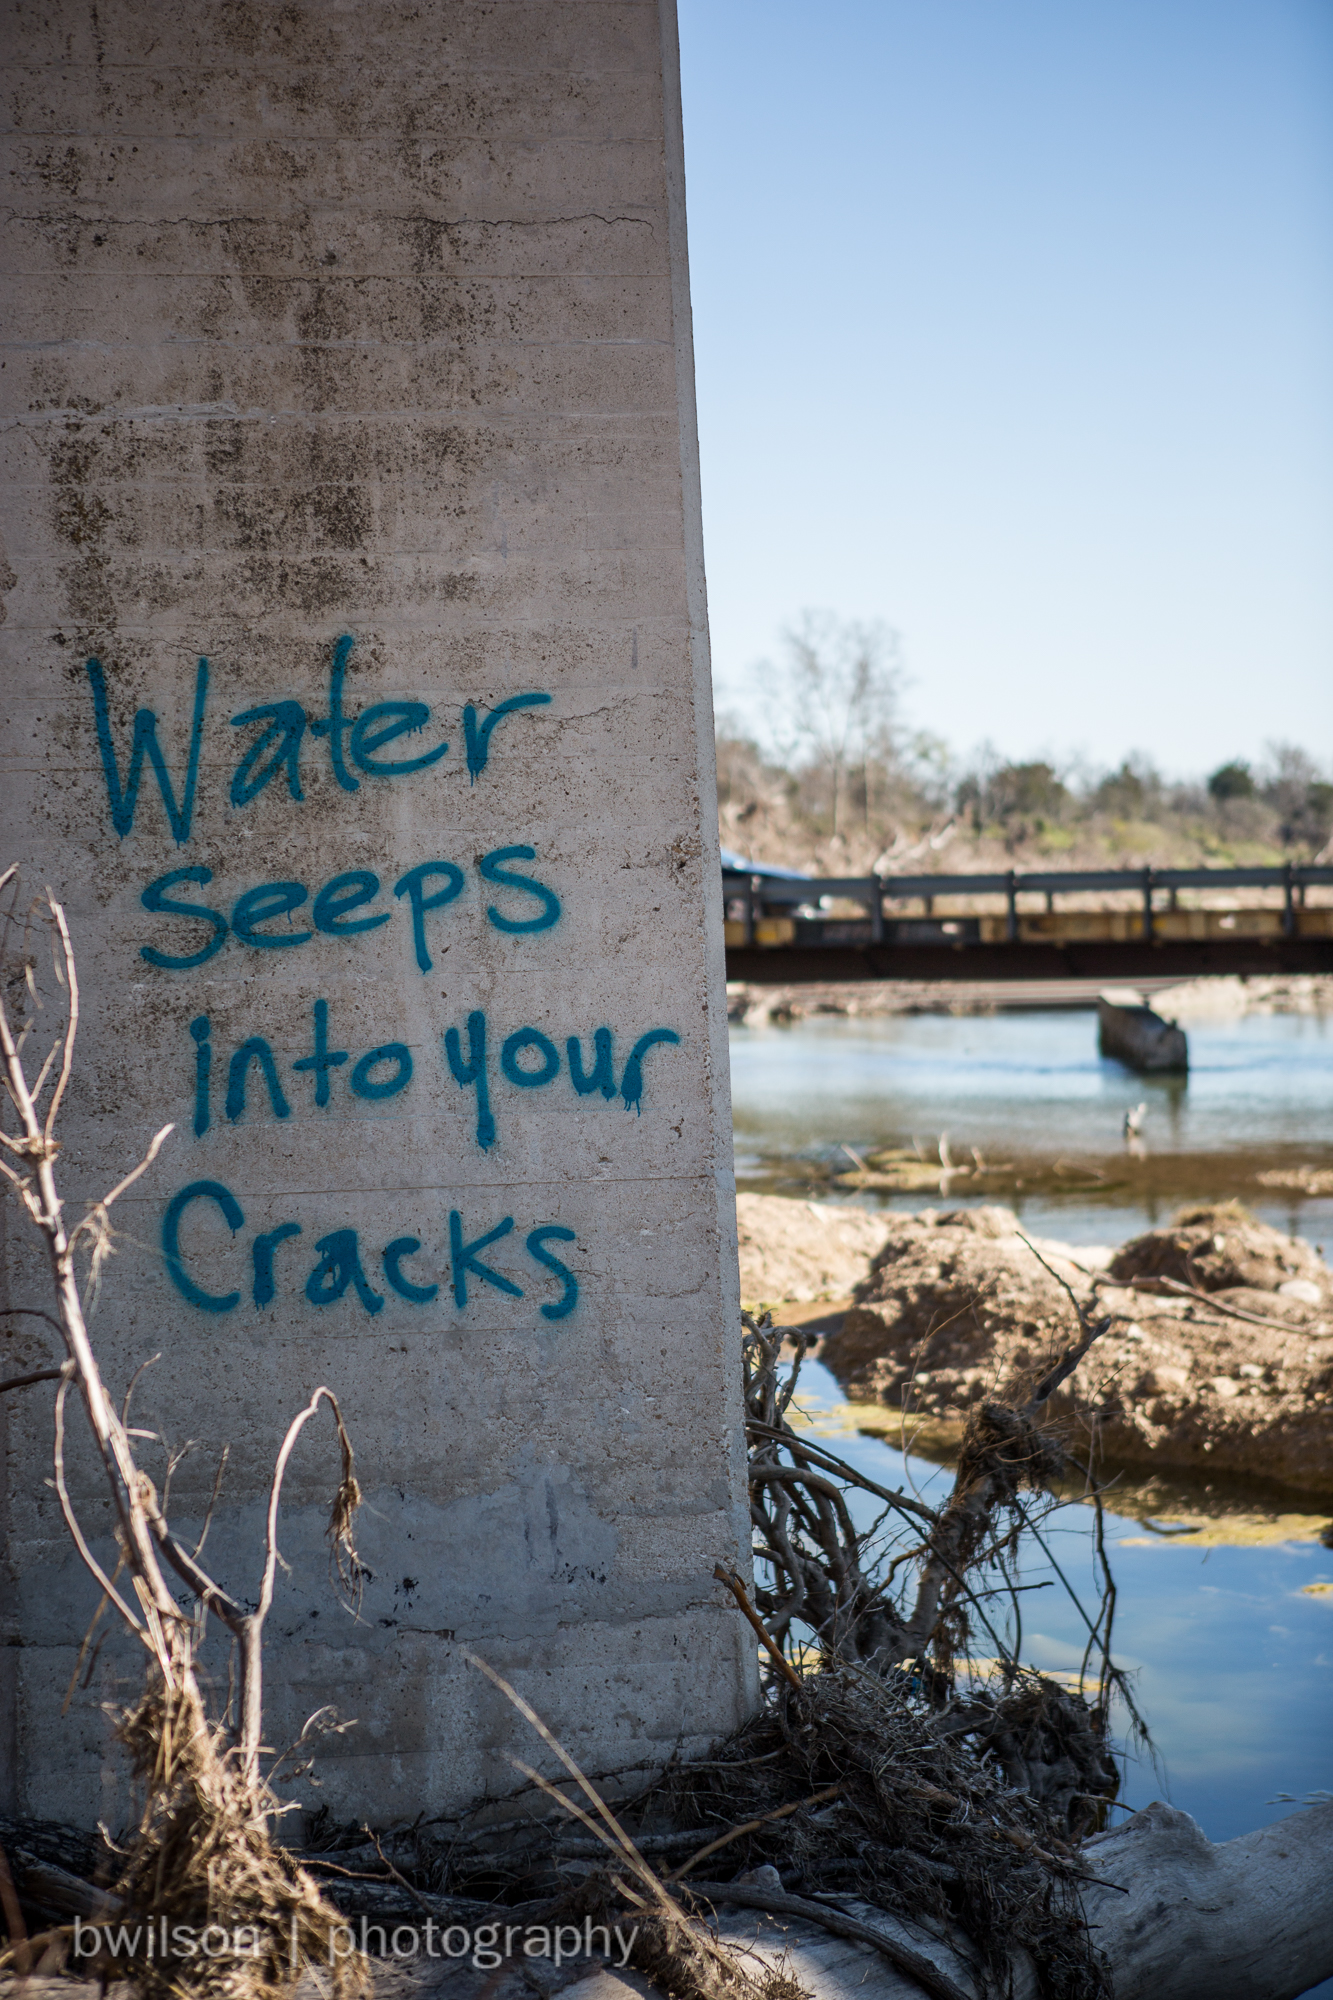 Into your cracks